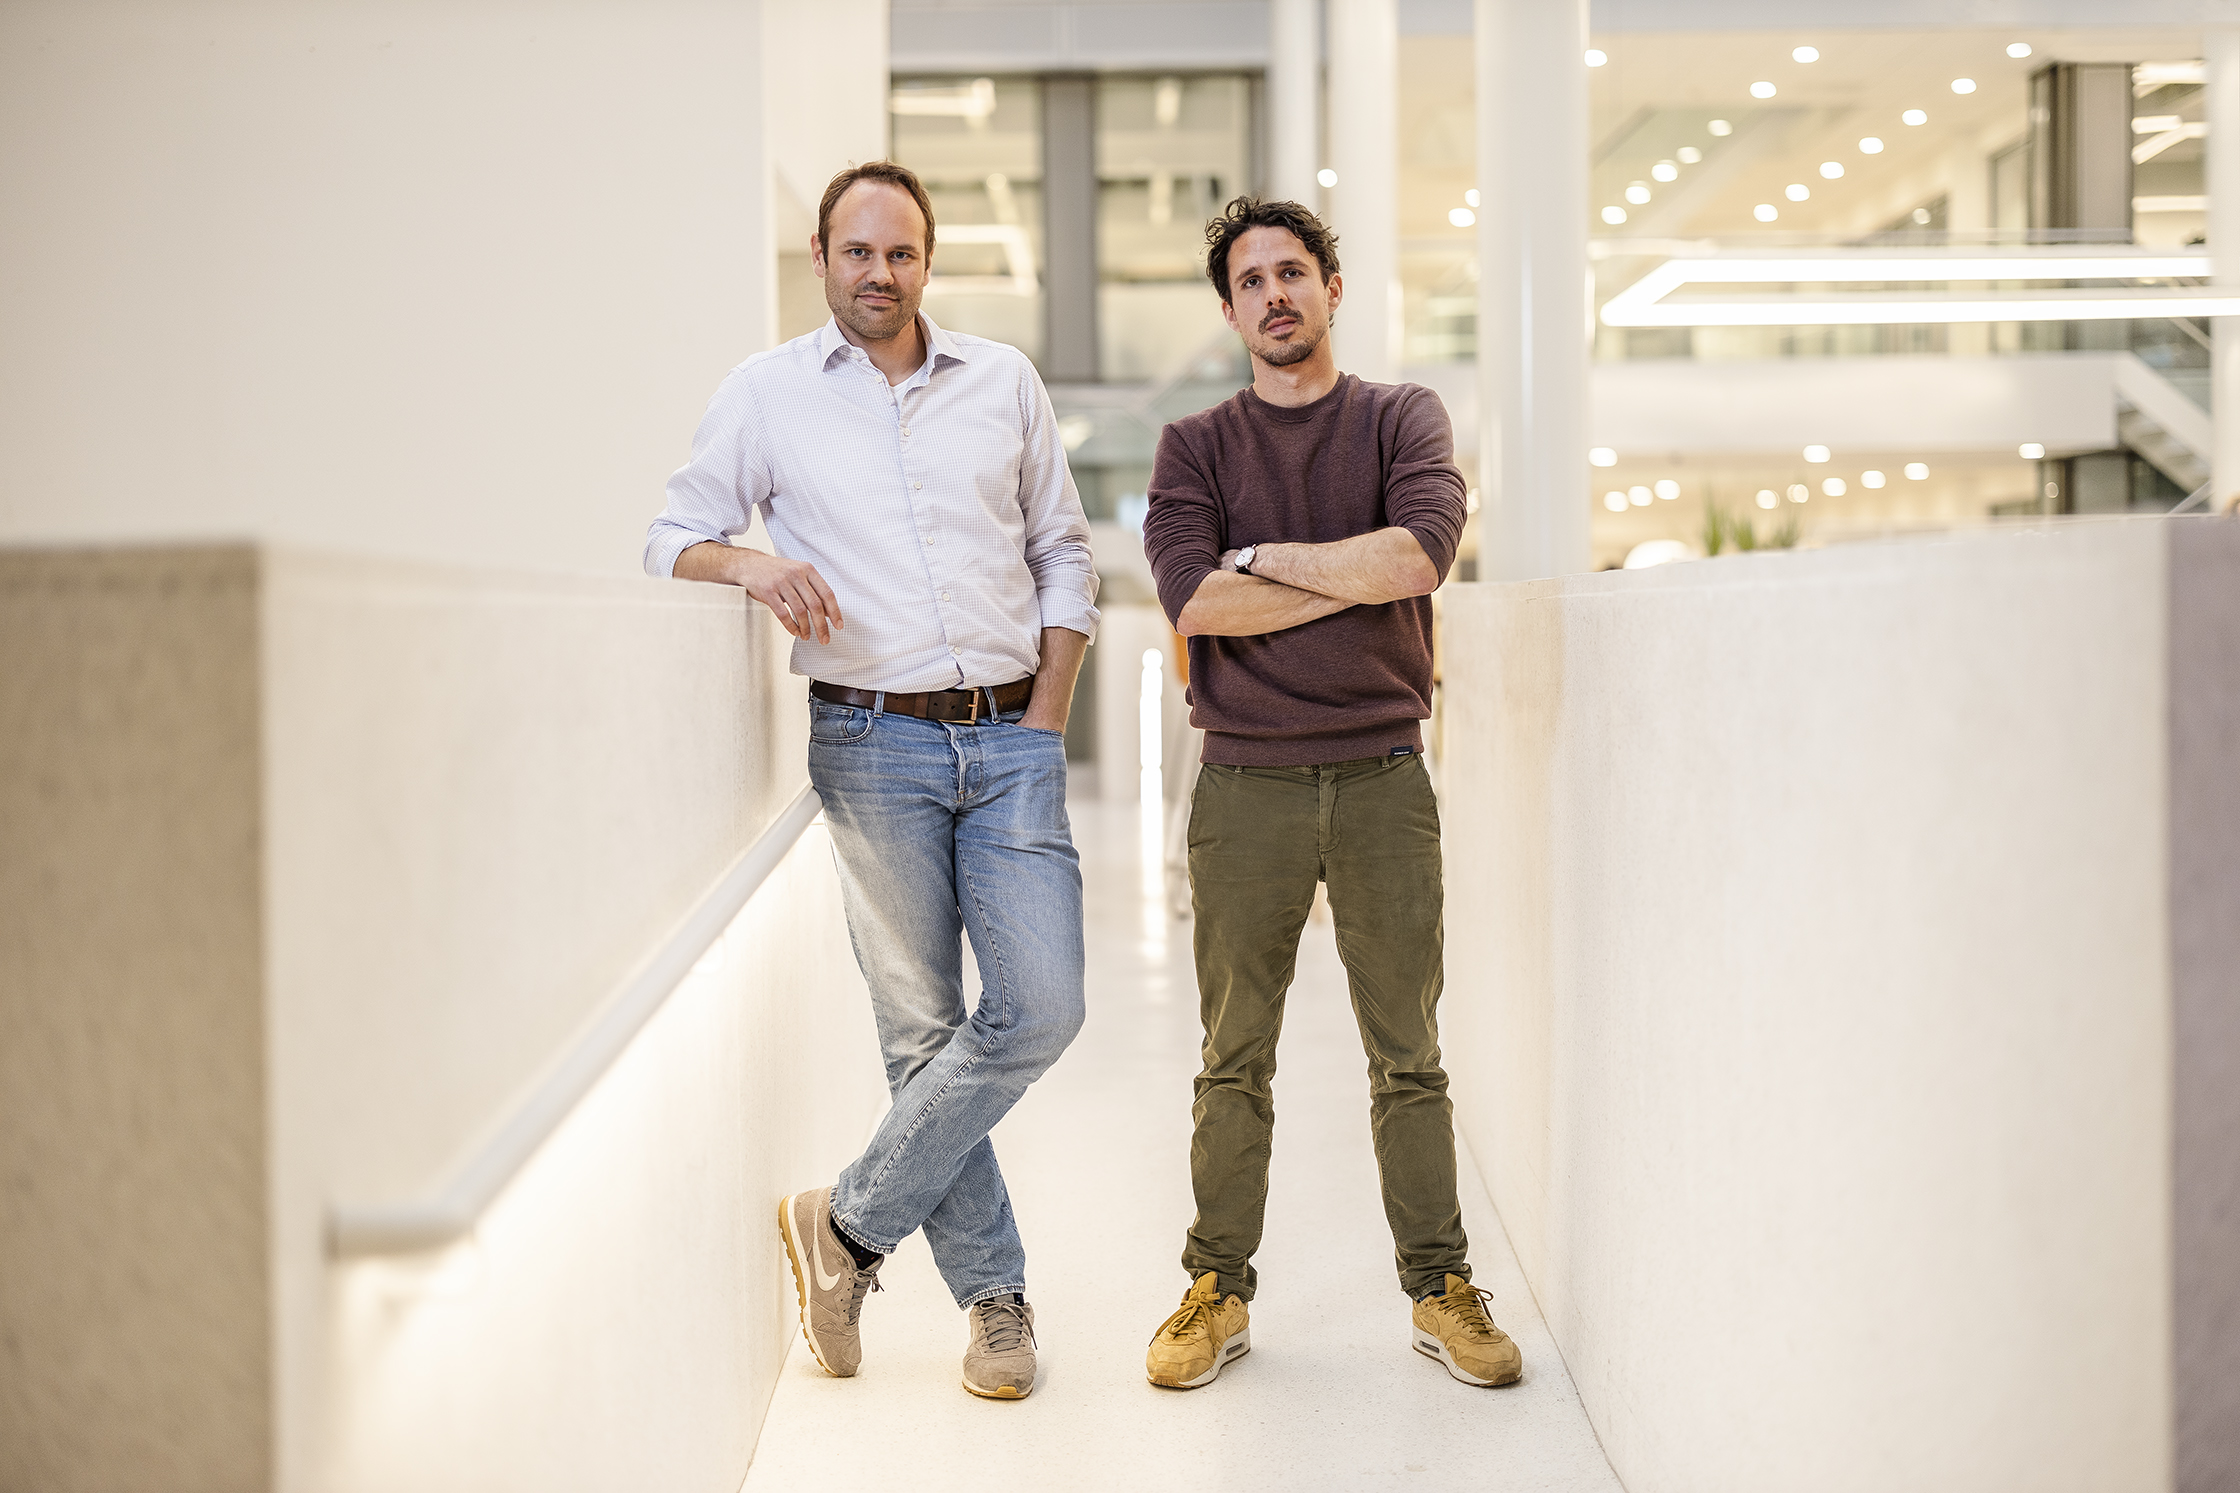 Piet-Hein Verberne & Maarten de Borst @ Office, Spaces Amsterdam